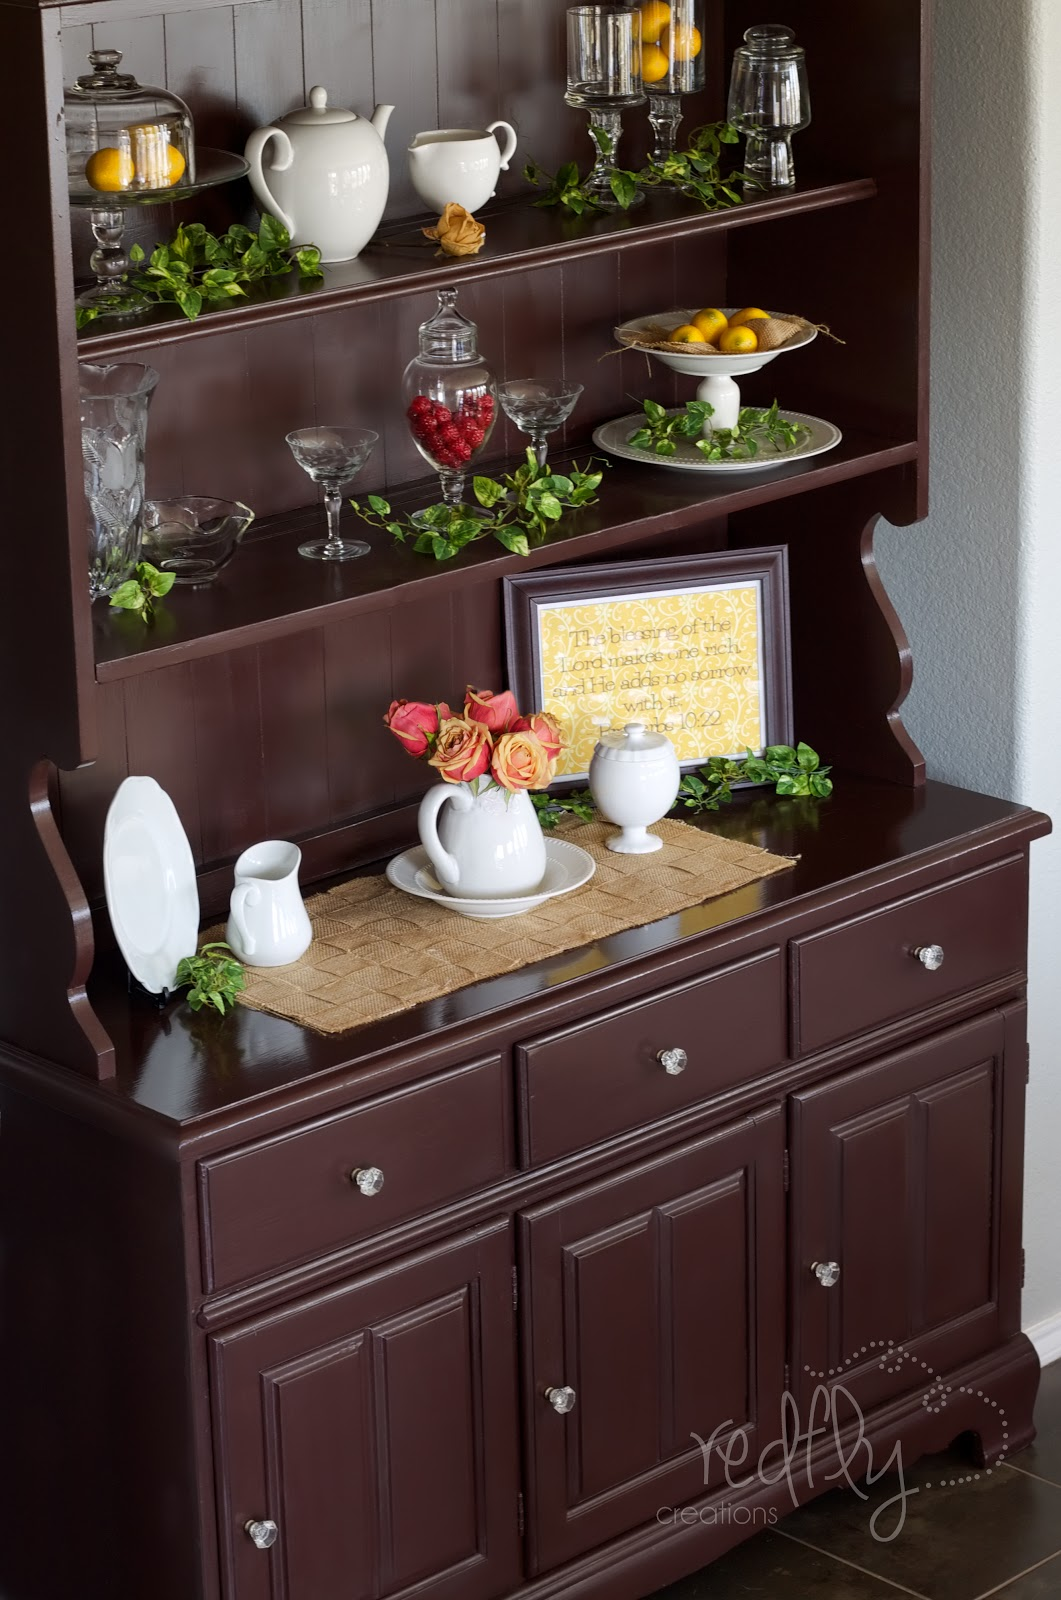 Redfly Creations The Craigslist Hutch Makeover